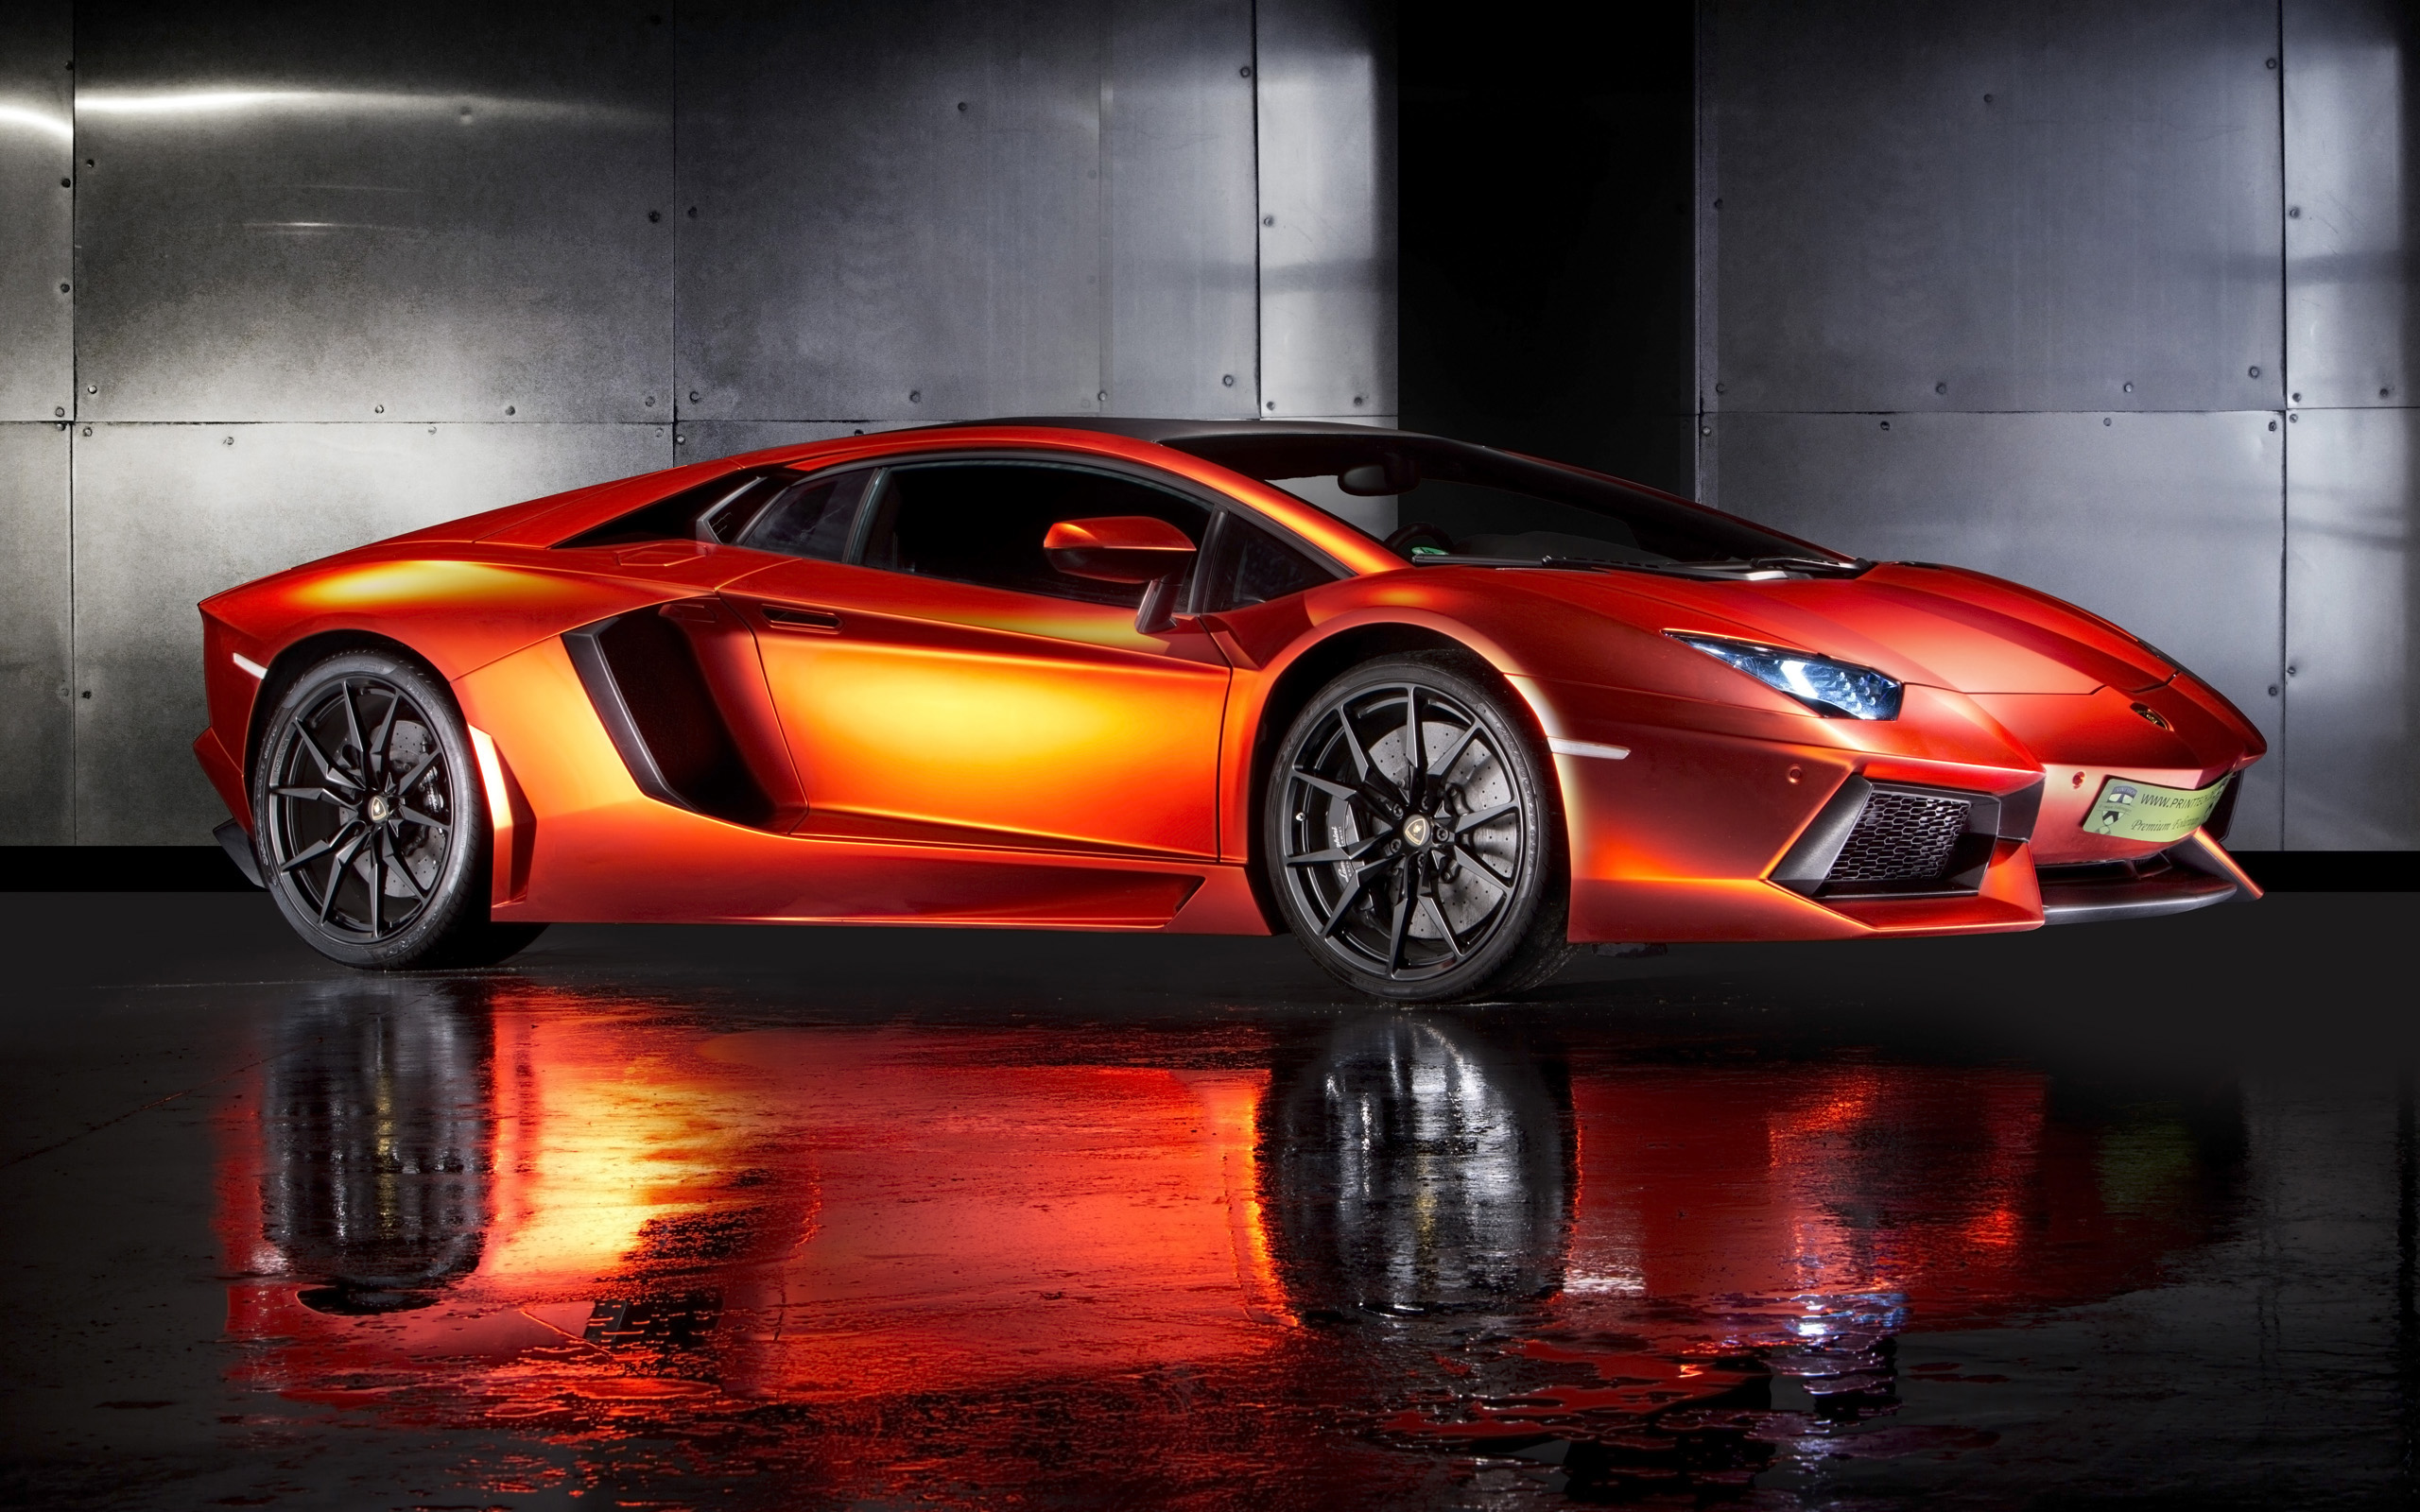 10 Lamborghini Supercars Wallpapers High Resolution 2560x1600